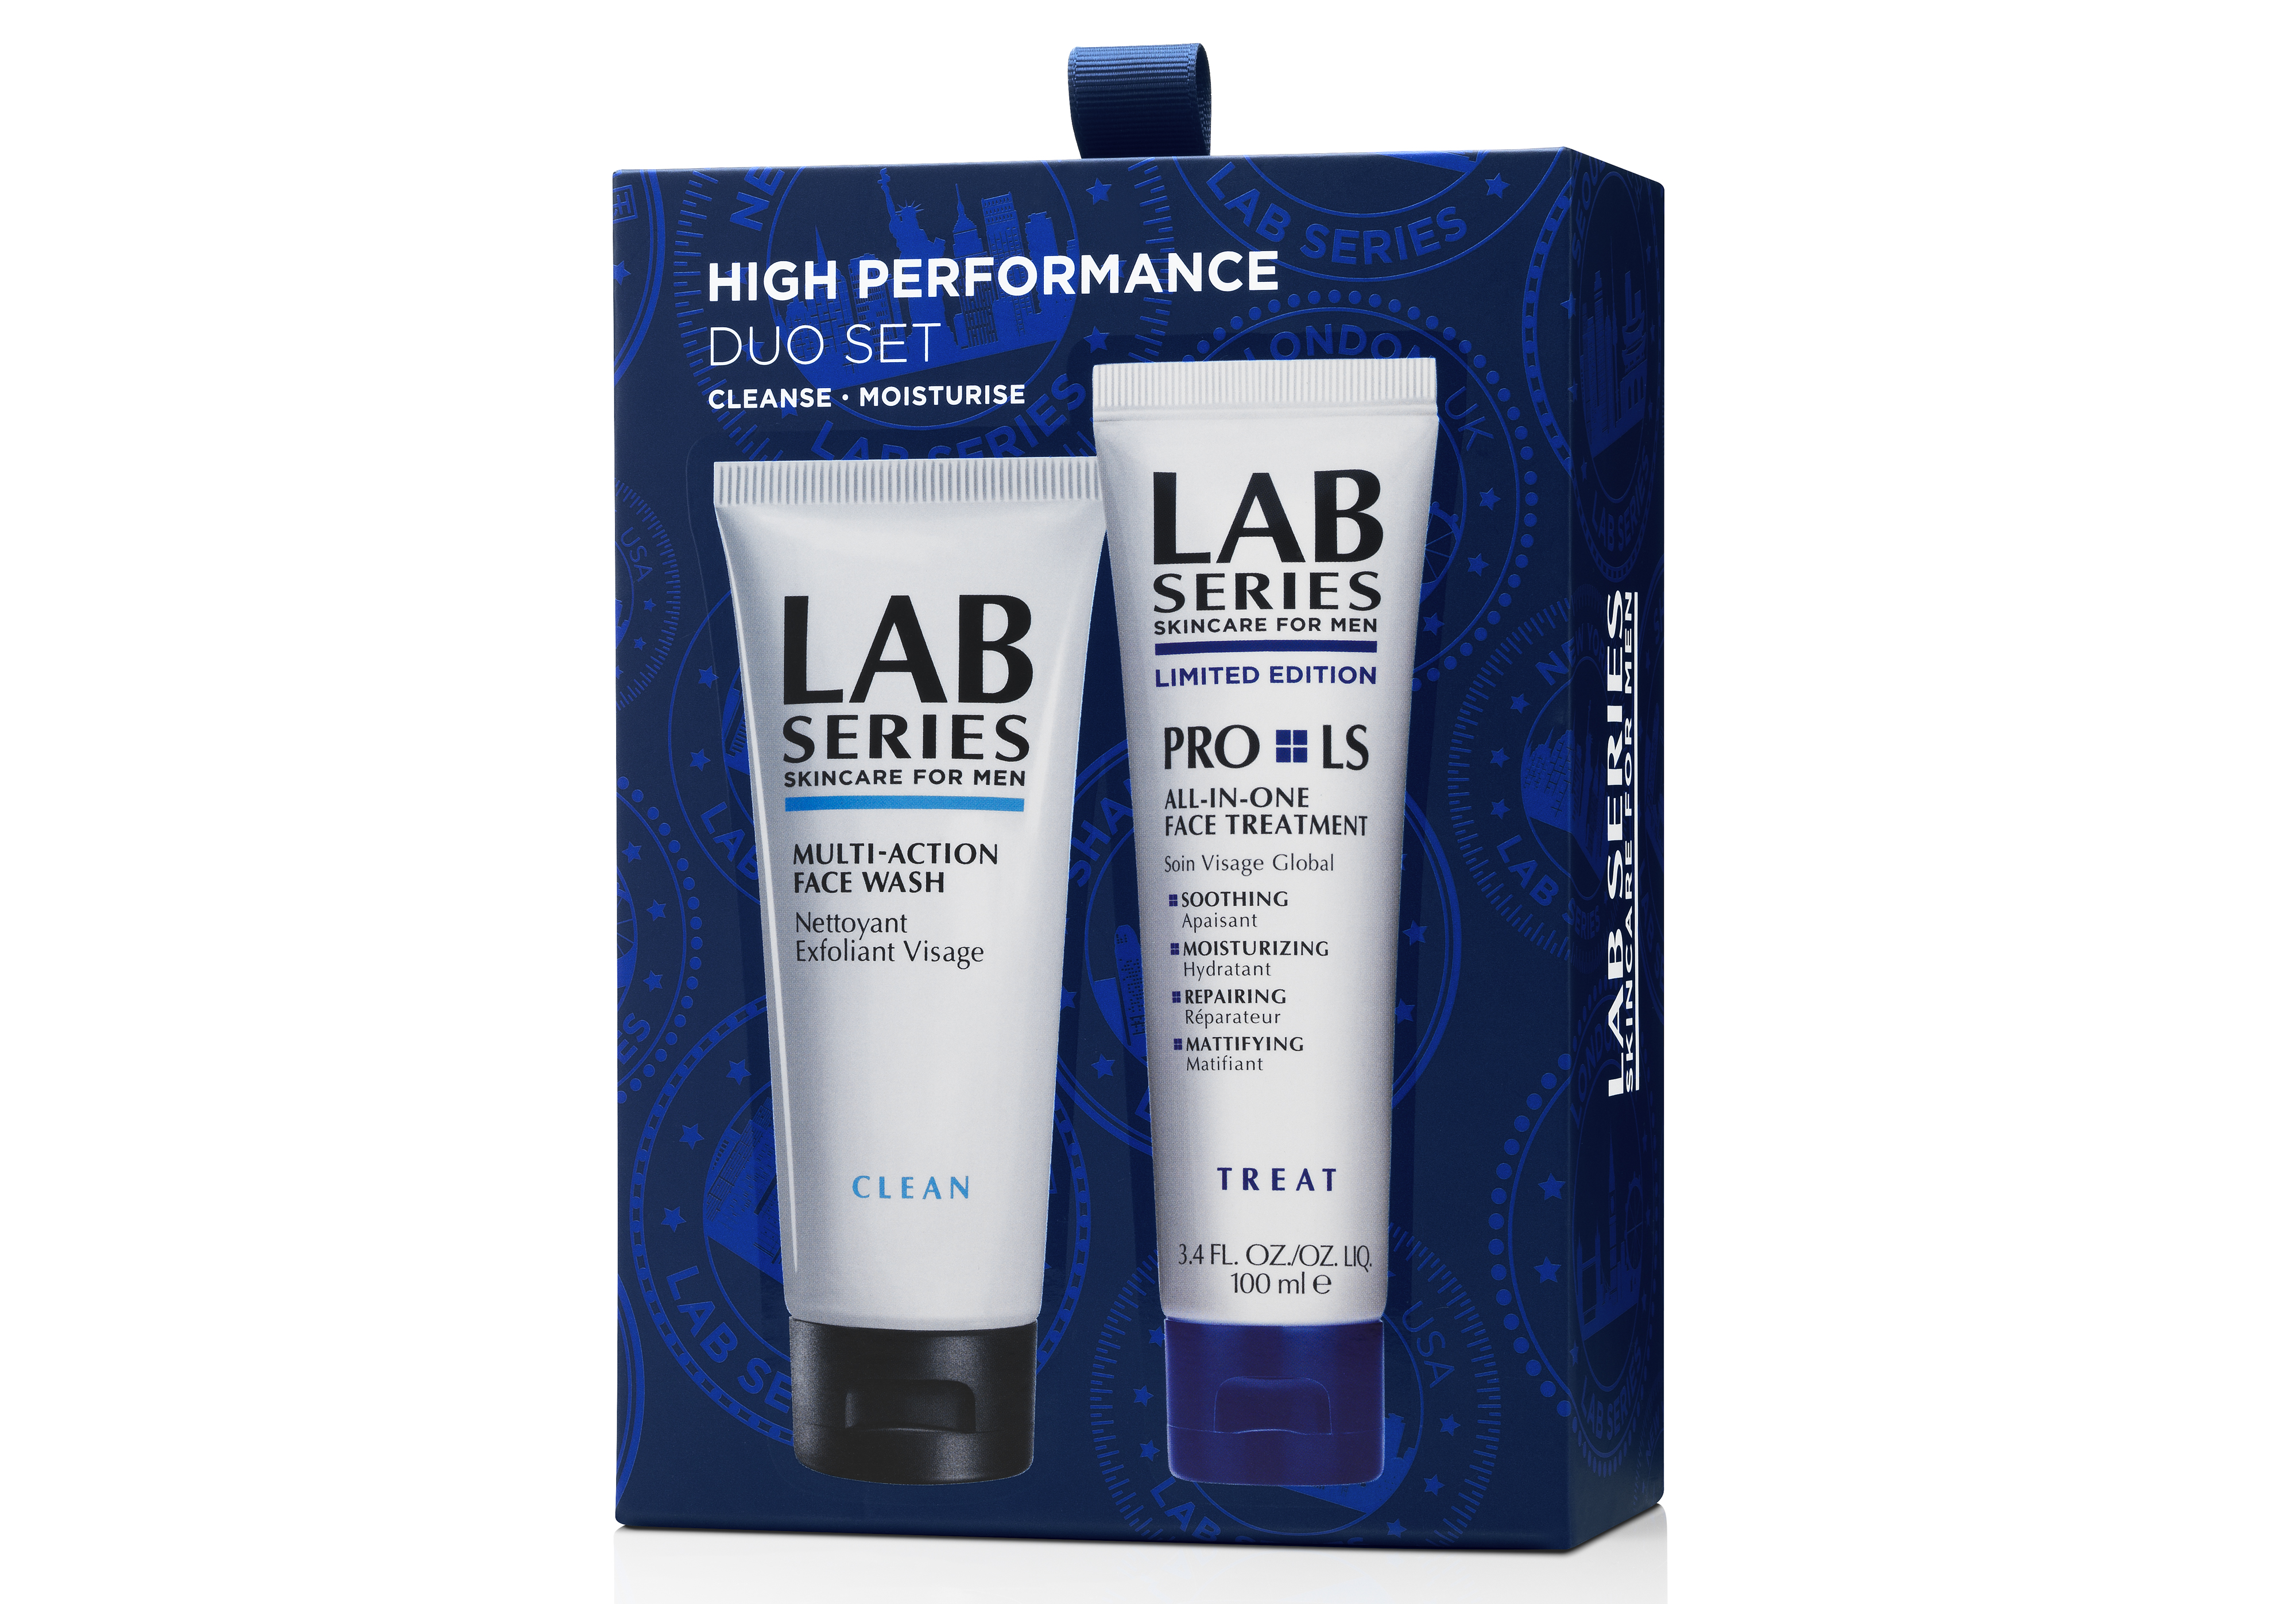 Lab Series High Performance Duo